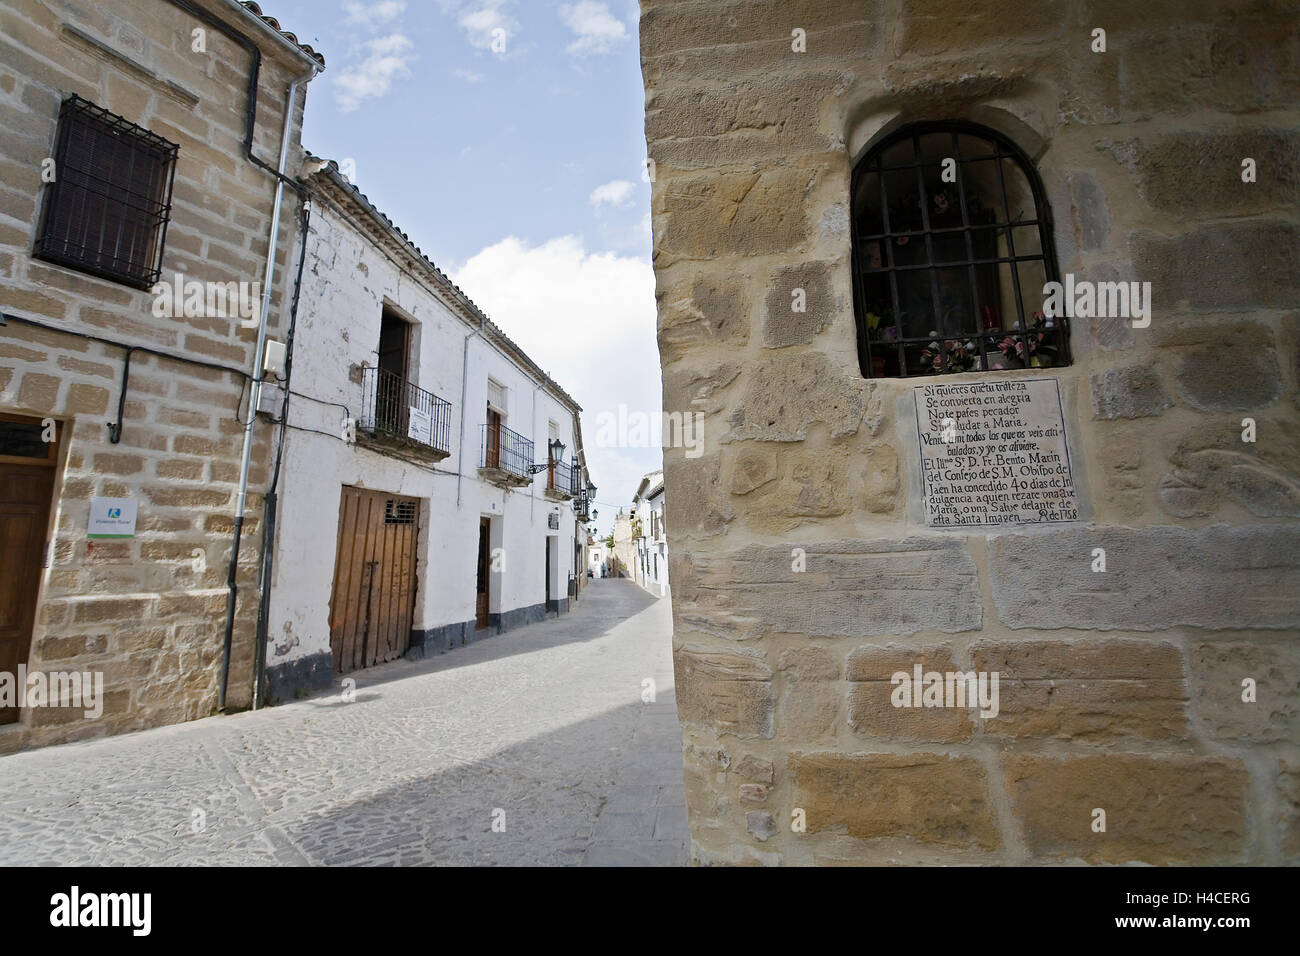 Street in Baeza, Jaen Province, Andalusia, Spain - Stock Image